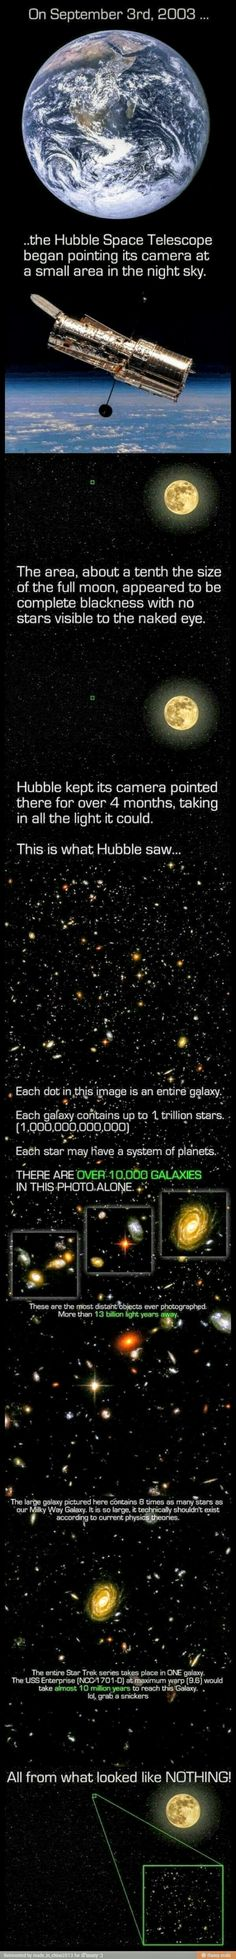 Where and how the original Hubble Deep Field was imaged in 2003.